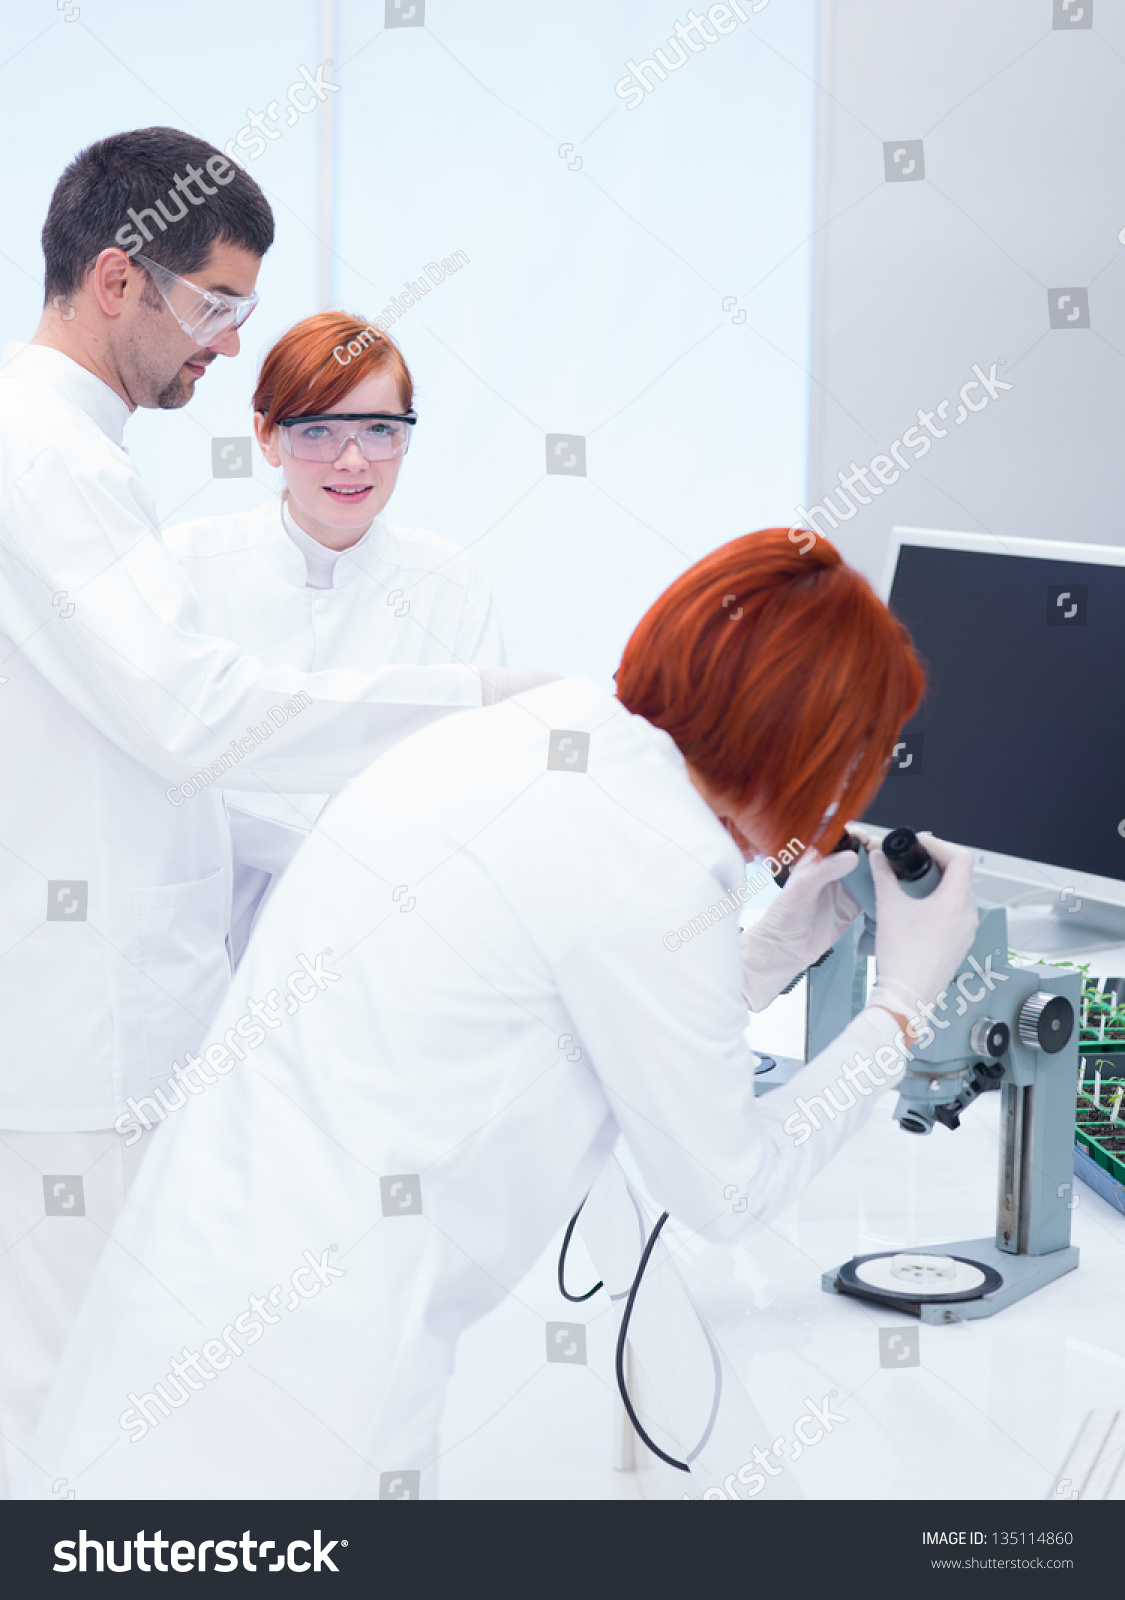 Close Up Of A Man Scientist Supervising Two Women In A Chemistry Lab Around Lab Toolsyzing